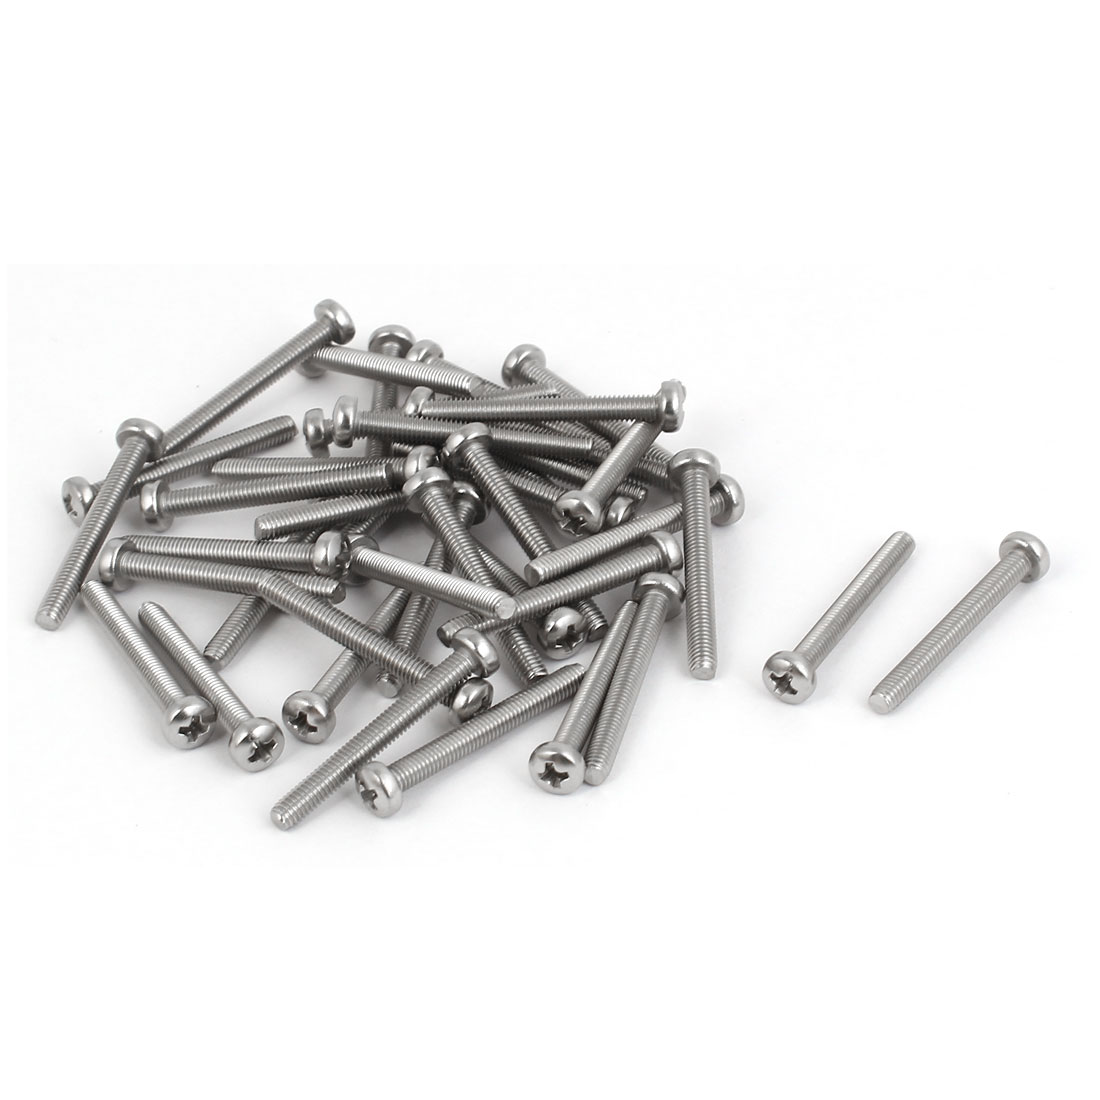 40 Pcs M3x25mm 316 Stainless Steel Phillips Pan Head Machine Screws Silver Tone